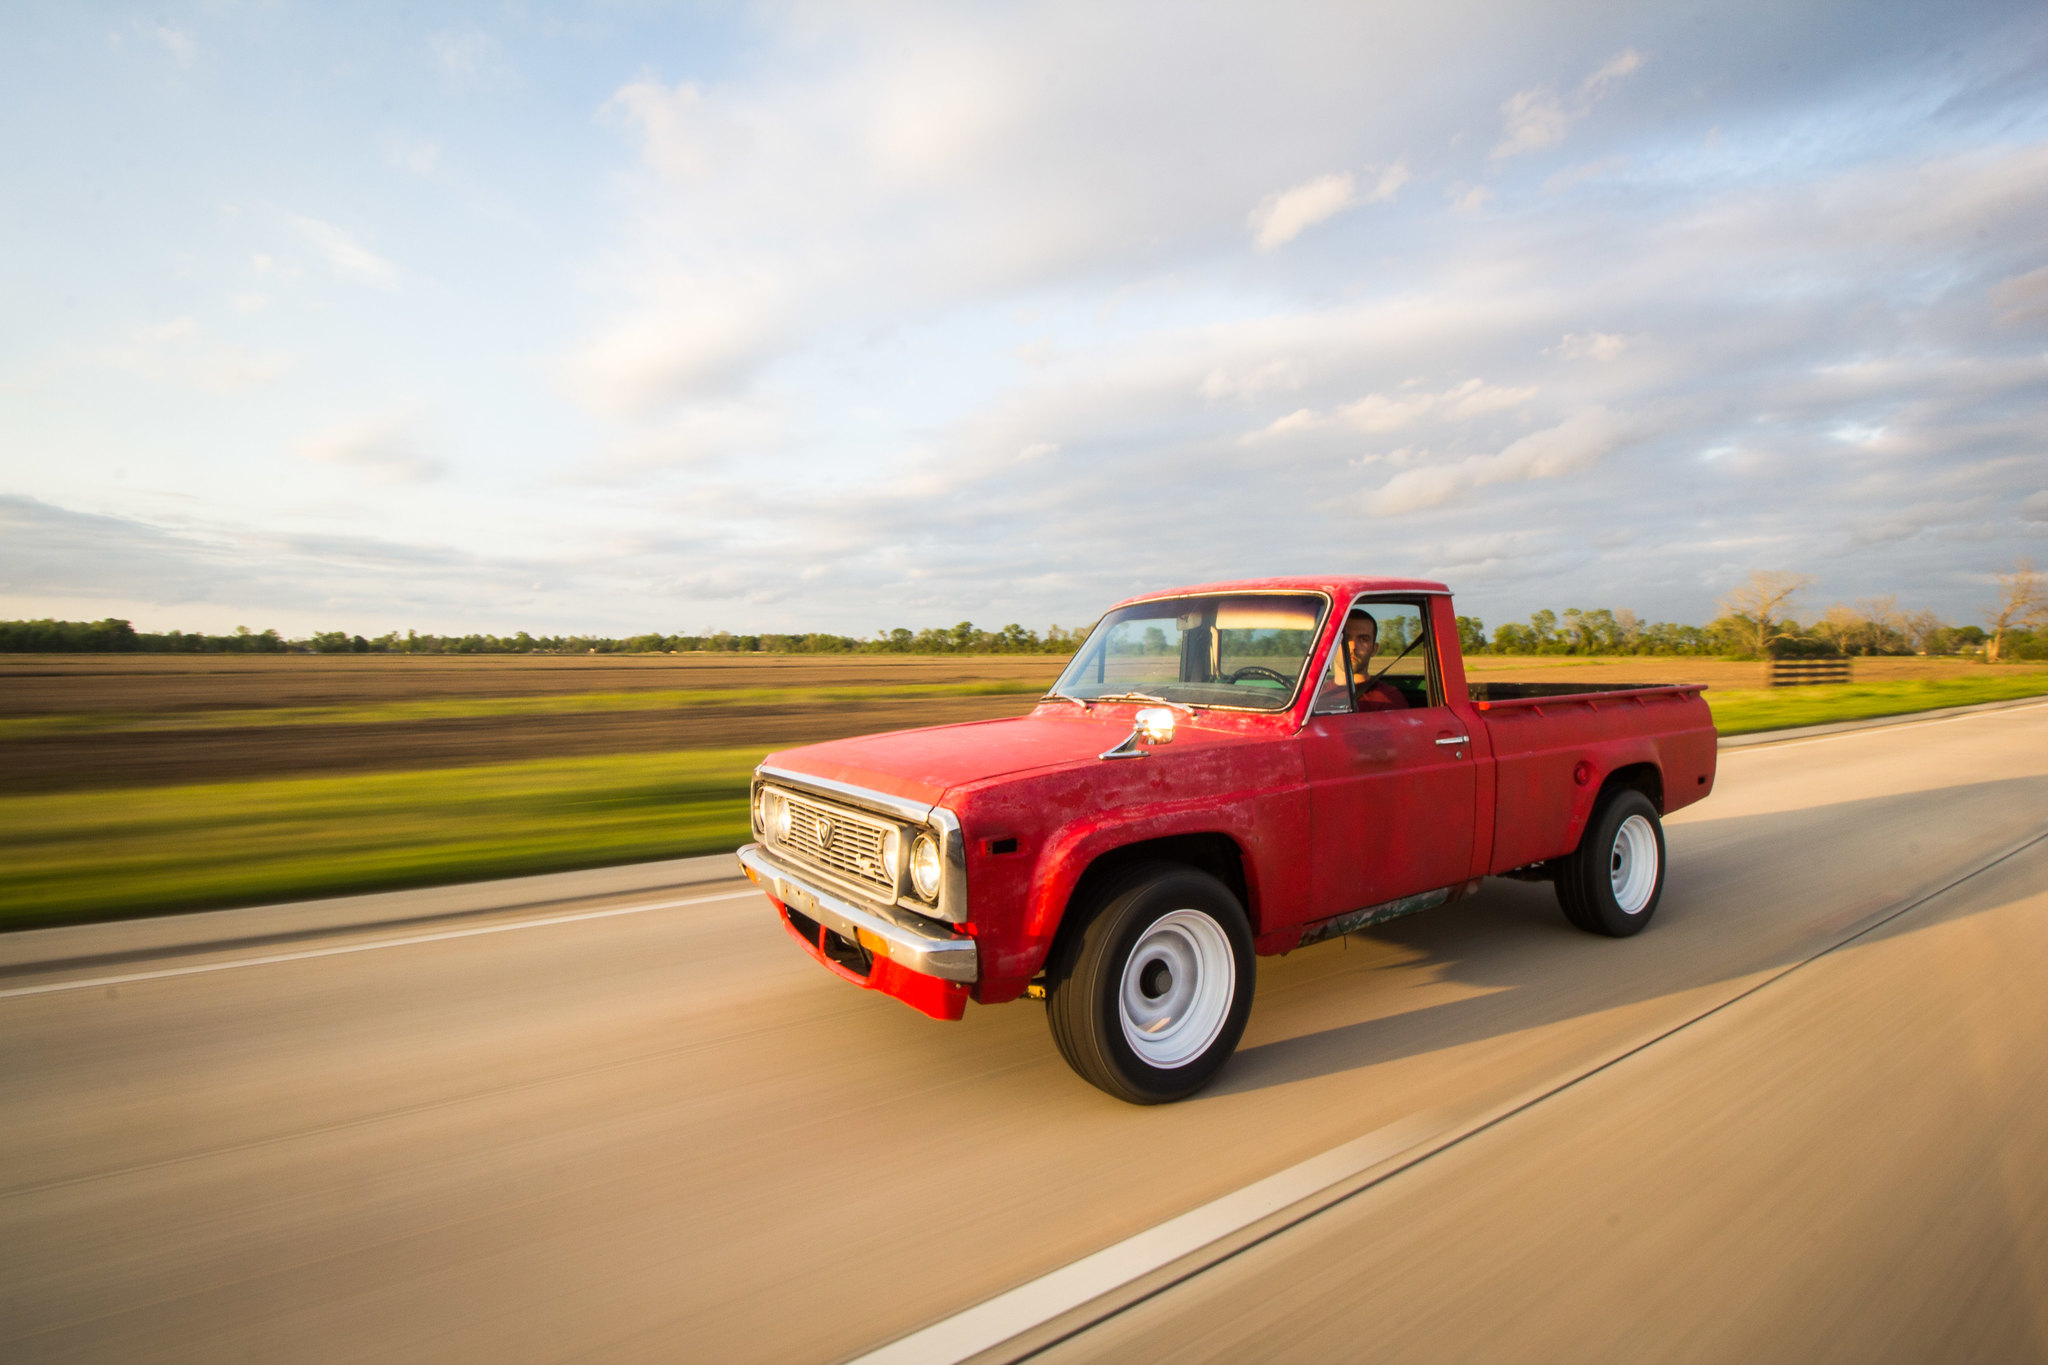 Awesome Old Mazdas For Sale Images - Classic Cars Ideas - boiq.info